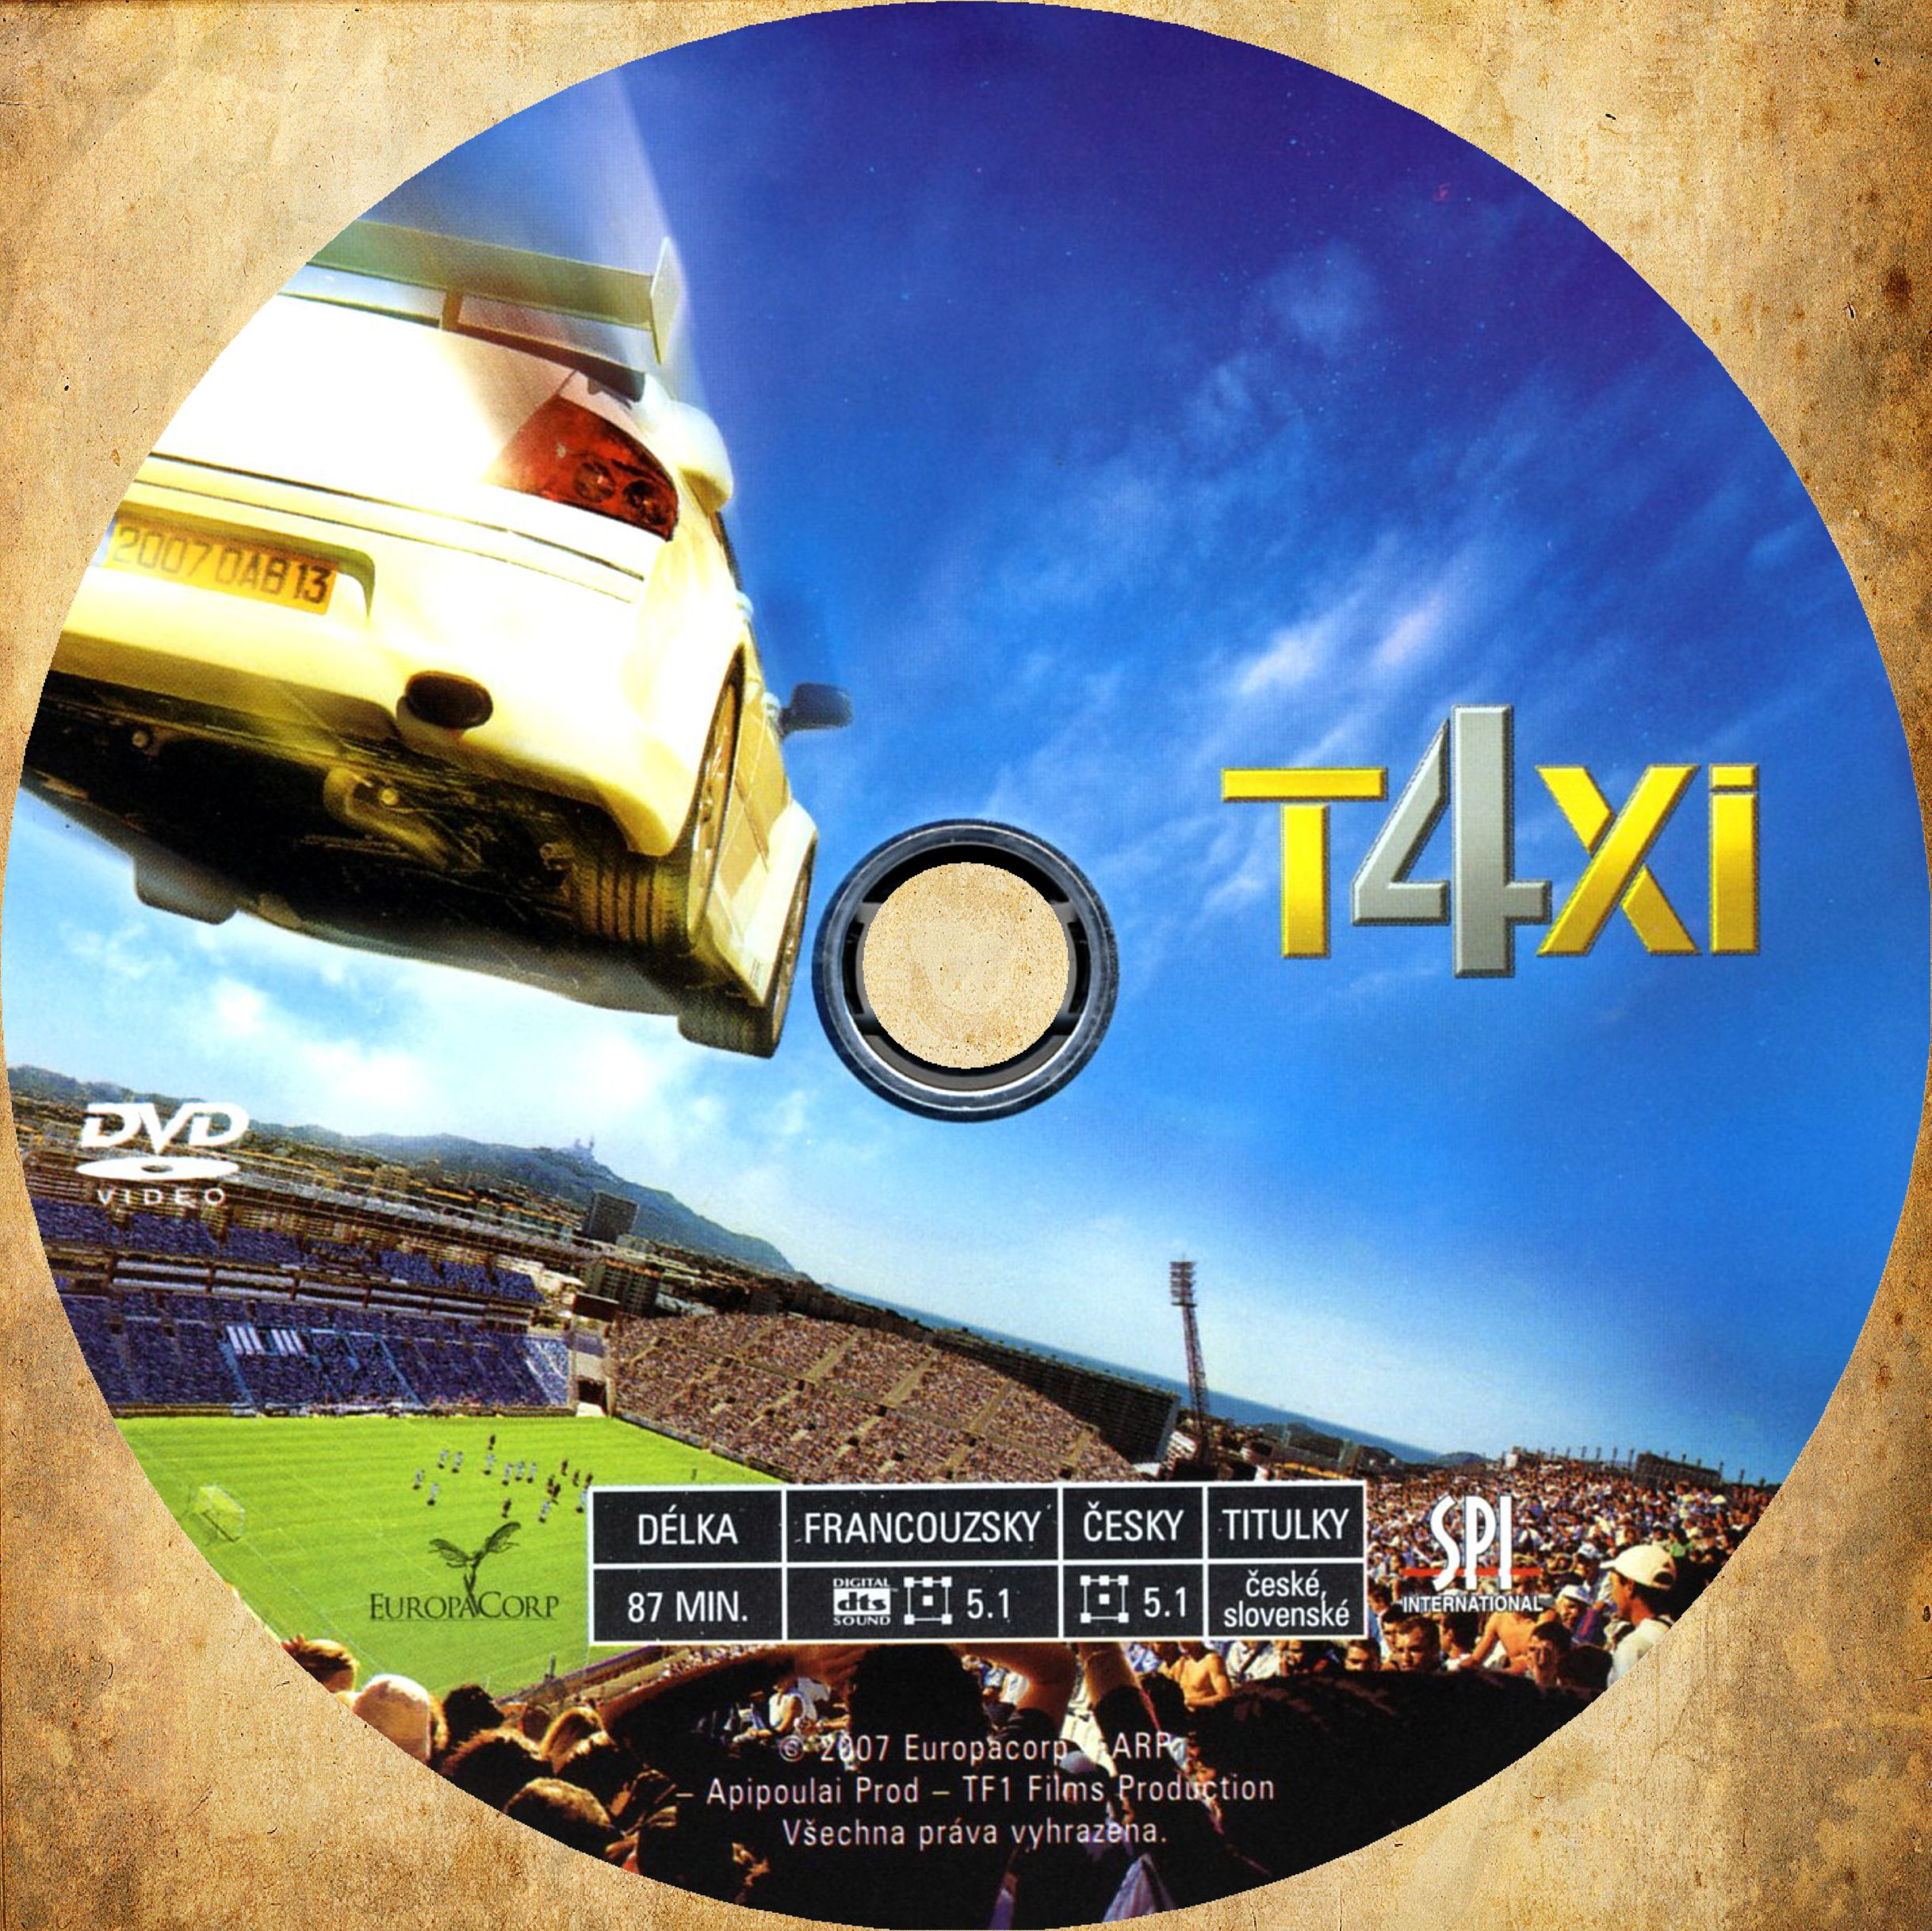 covers box sk taxi 4 2007 high quality dvd blueray movie. Black Bedroom Furniture Sets. Home Design Ideas